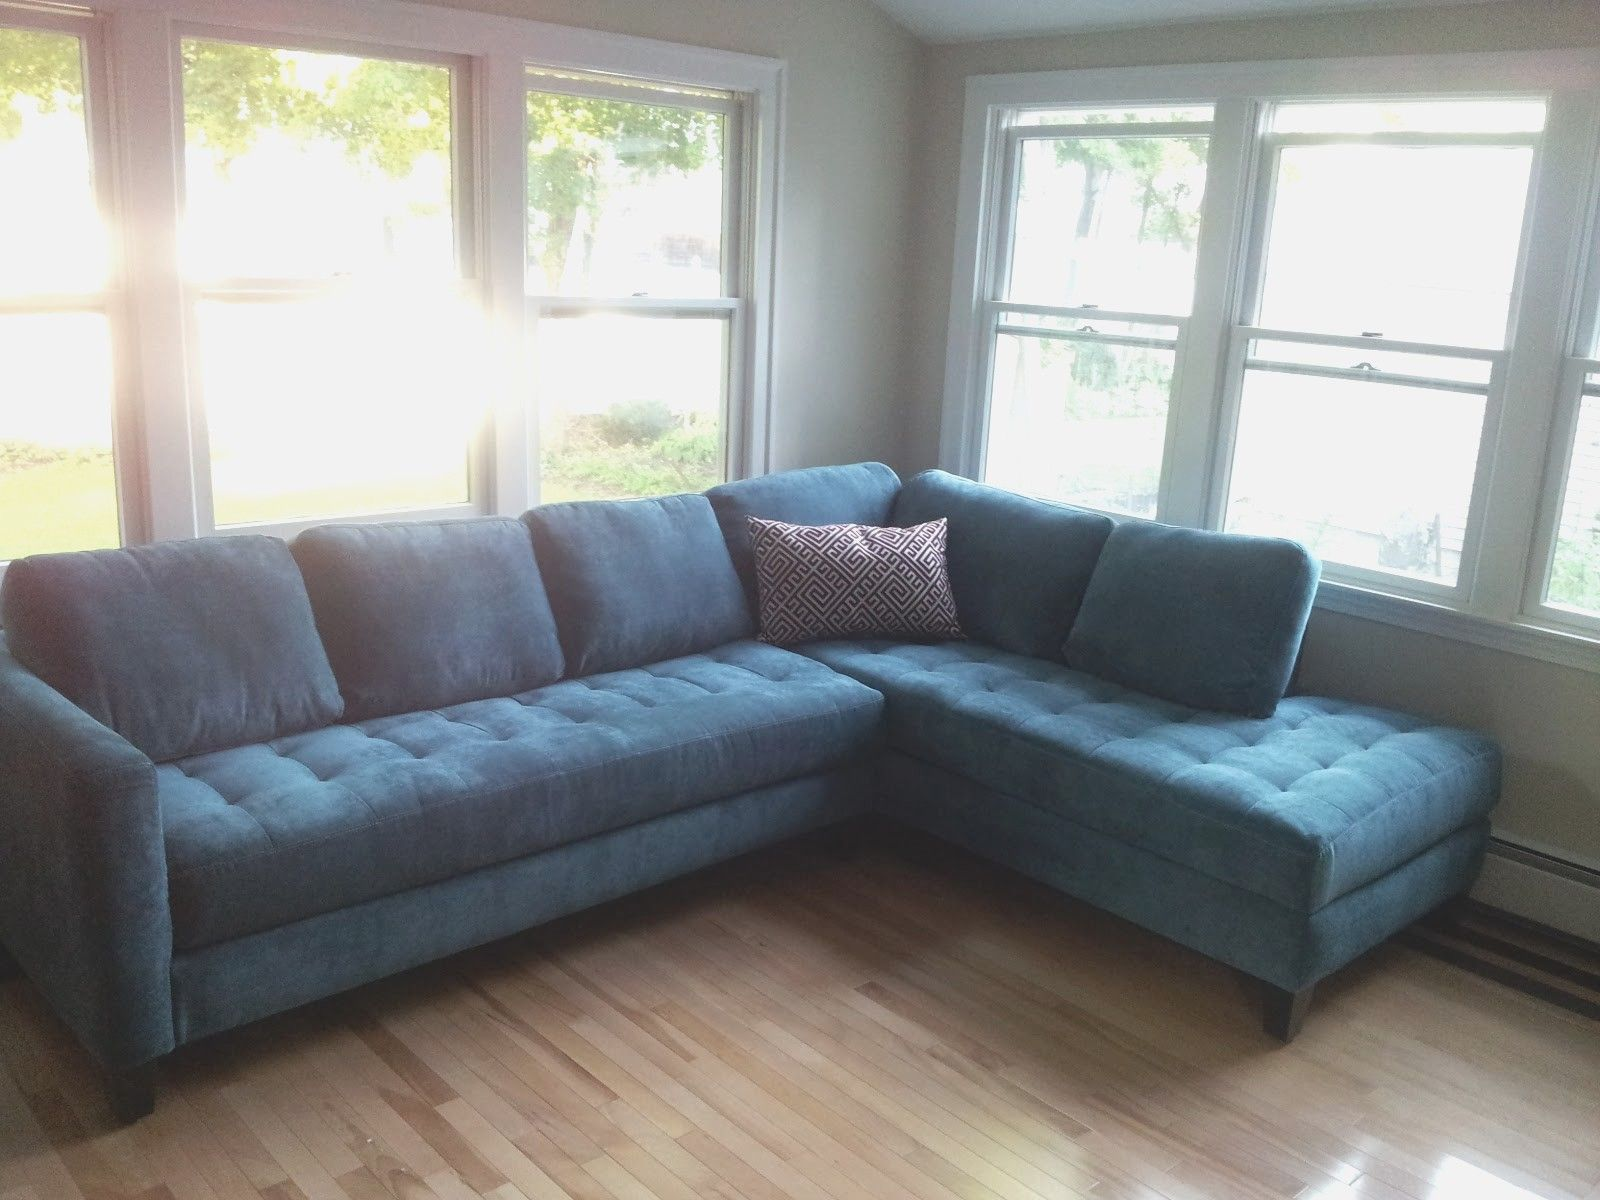 Sectional Sofas For Small Living Rooms Arrange Sectional Sofa